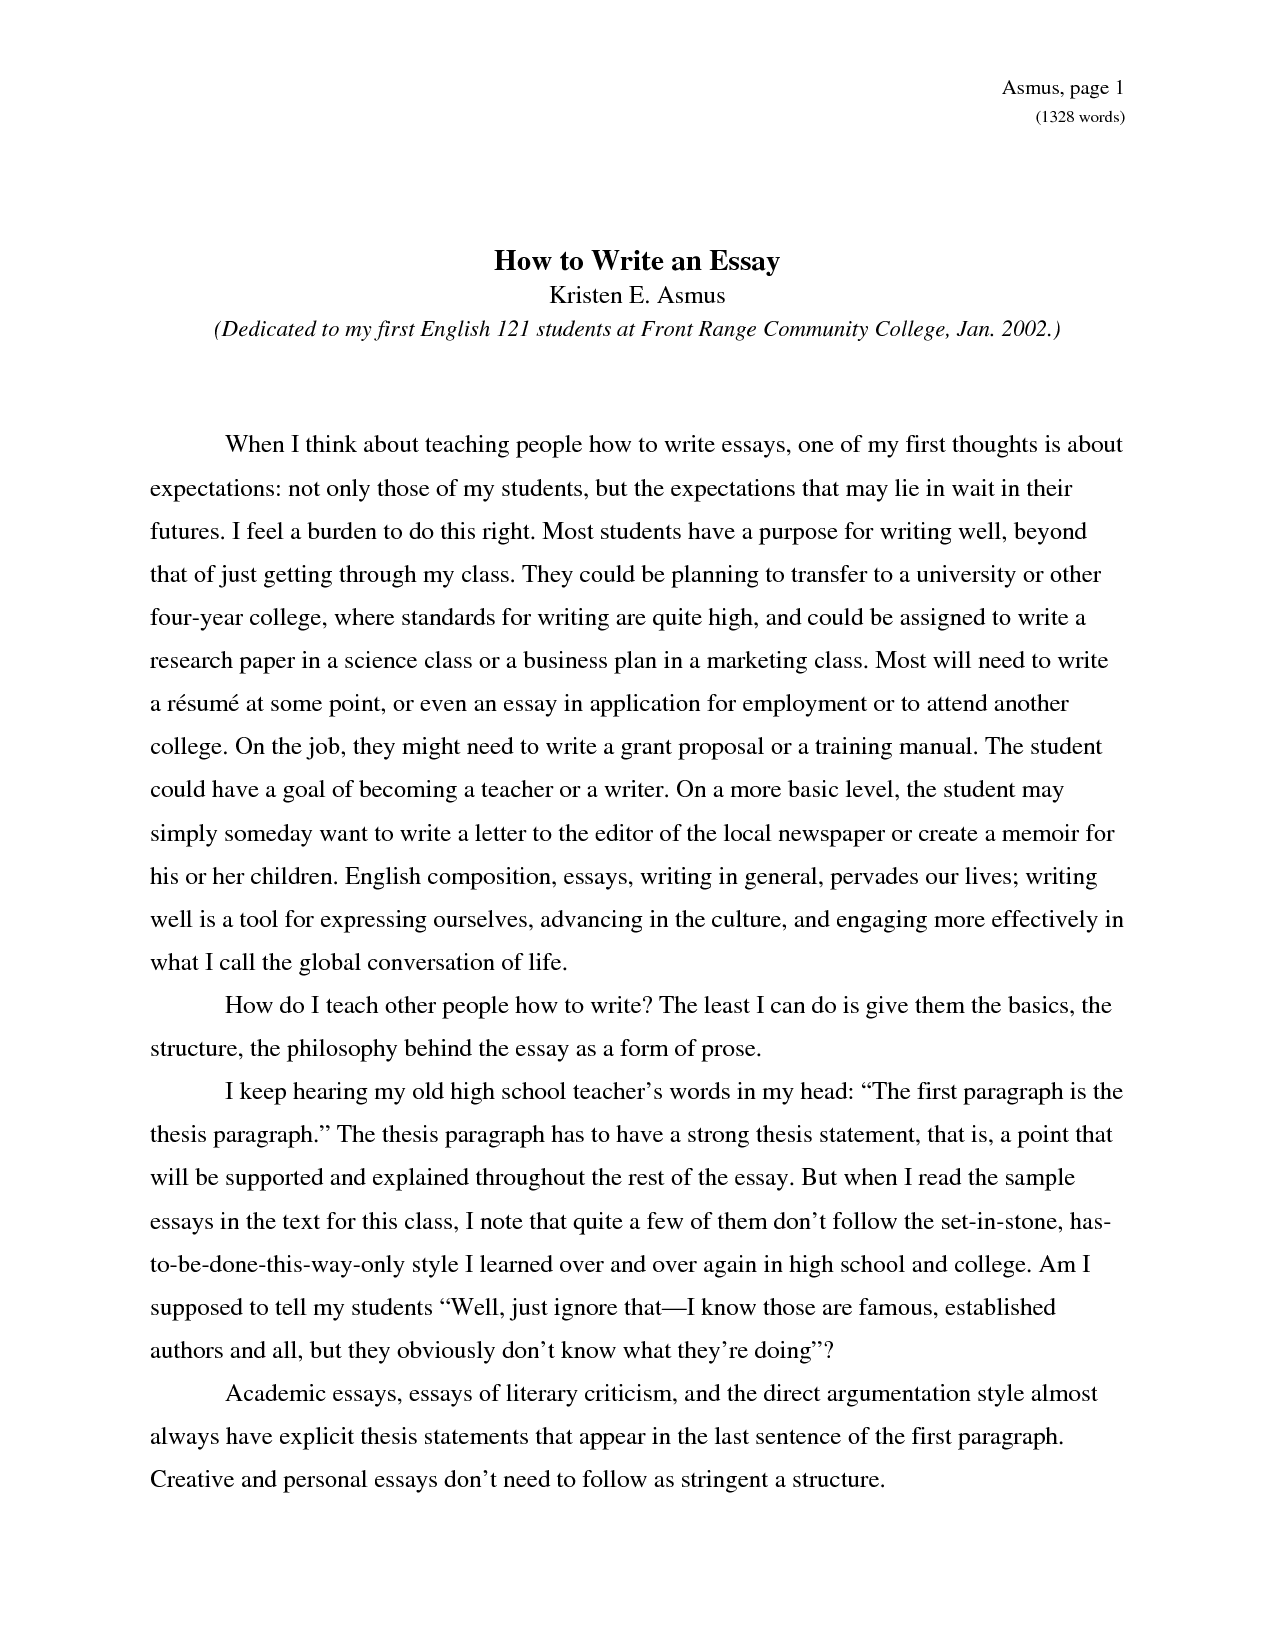 write right essay Learn how to write a college essay that sets you apart  crafting an unforgettable college essay  take our short quiz to learn which is the right career for you.